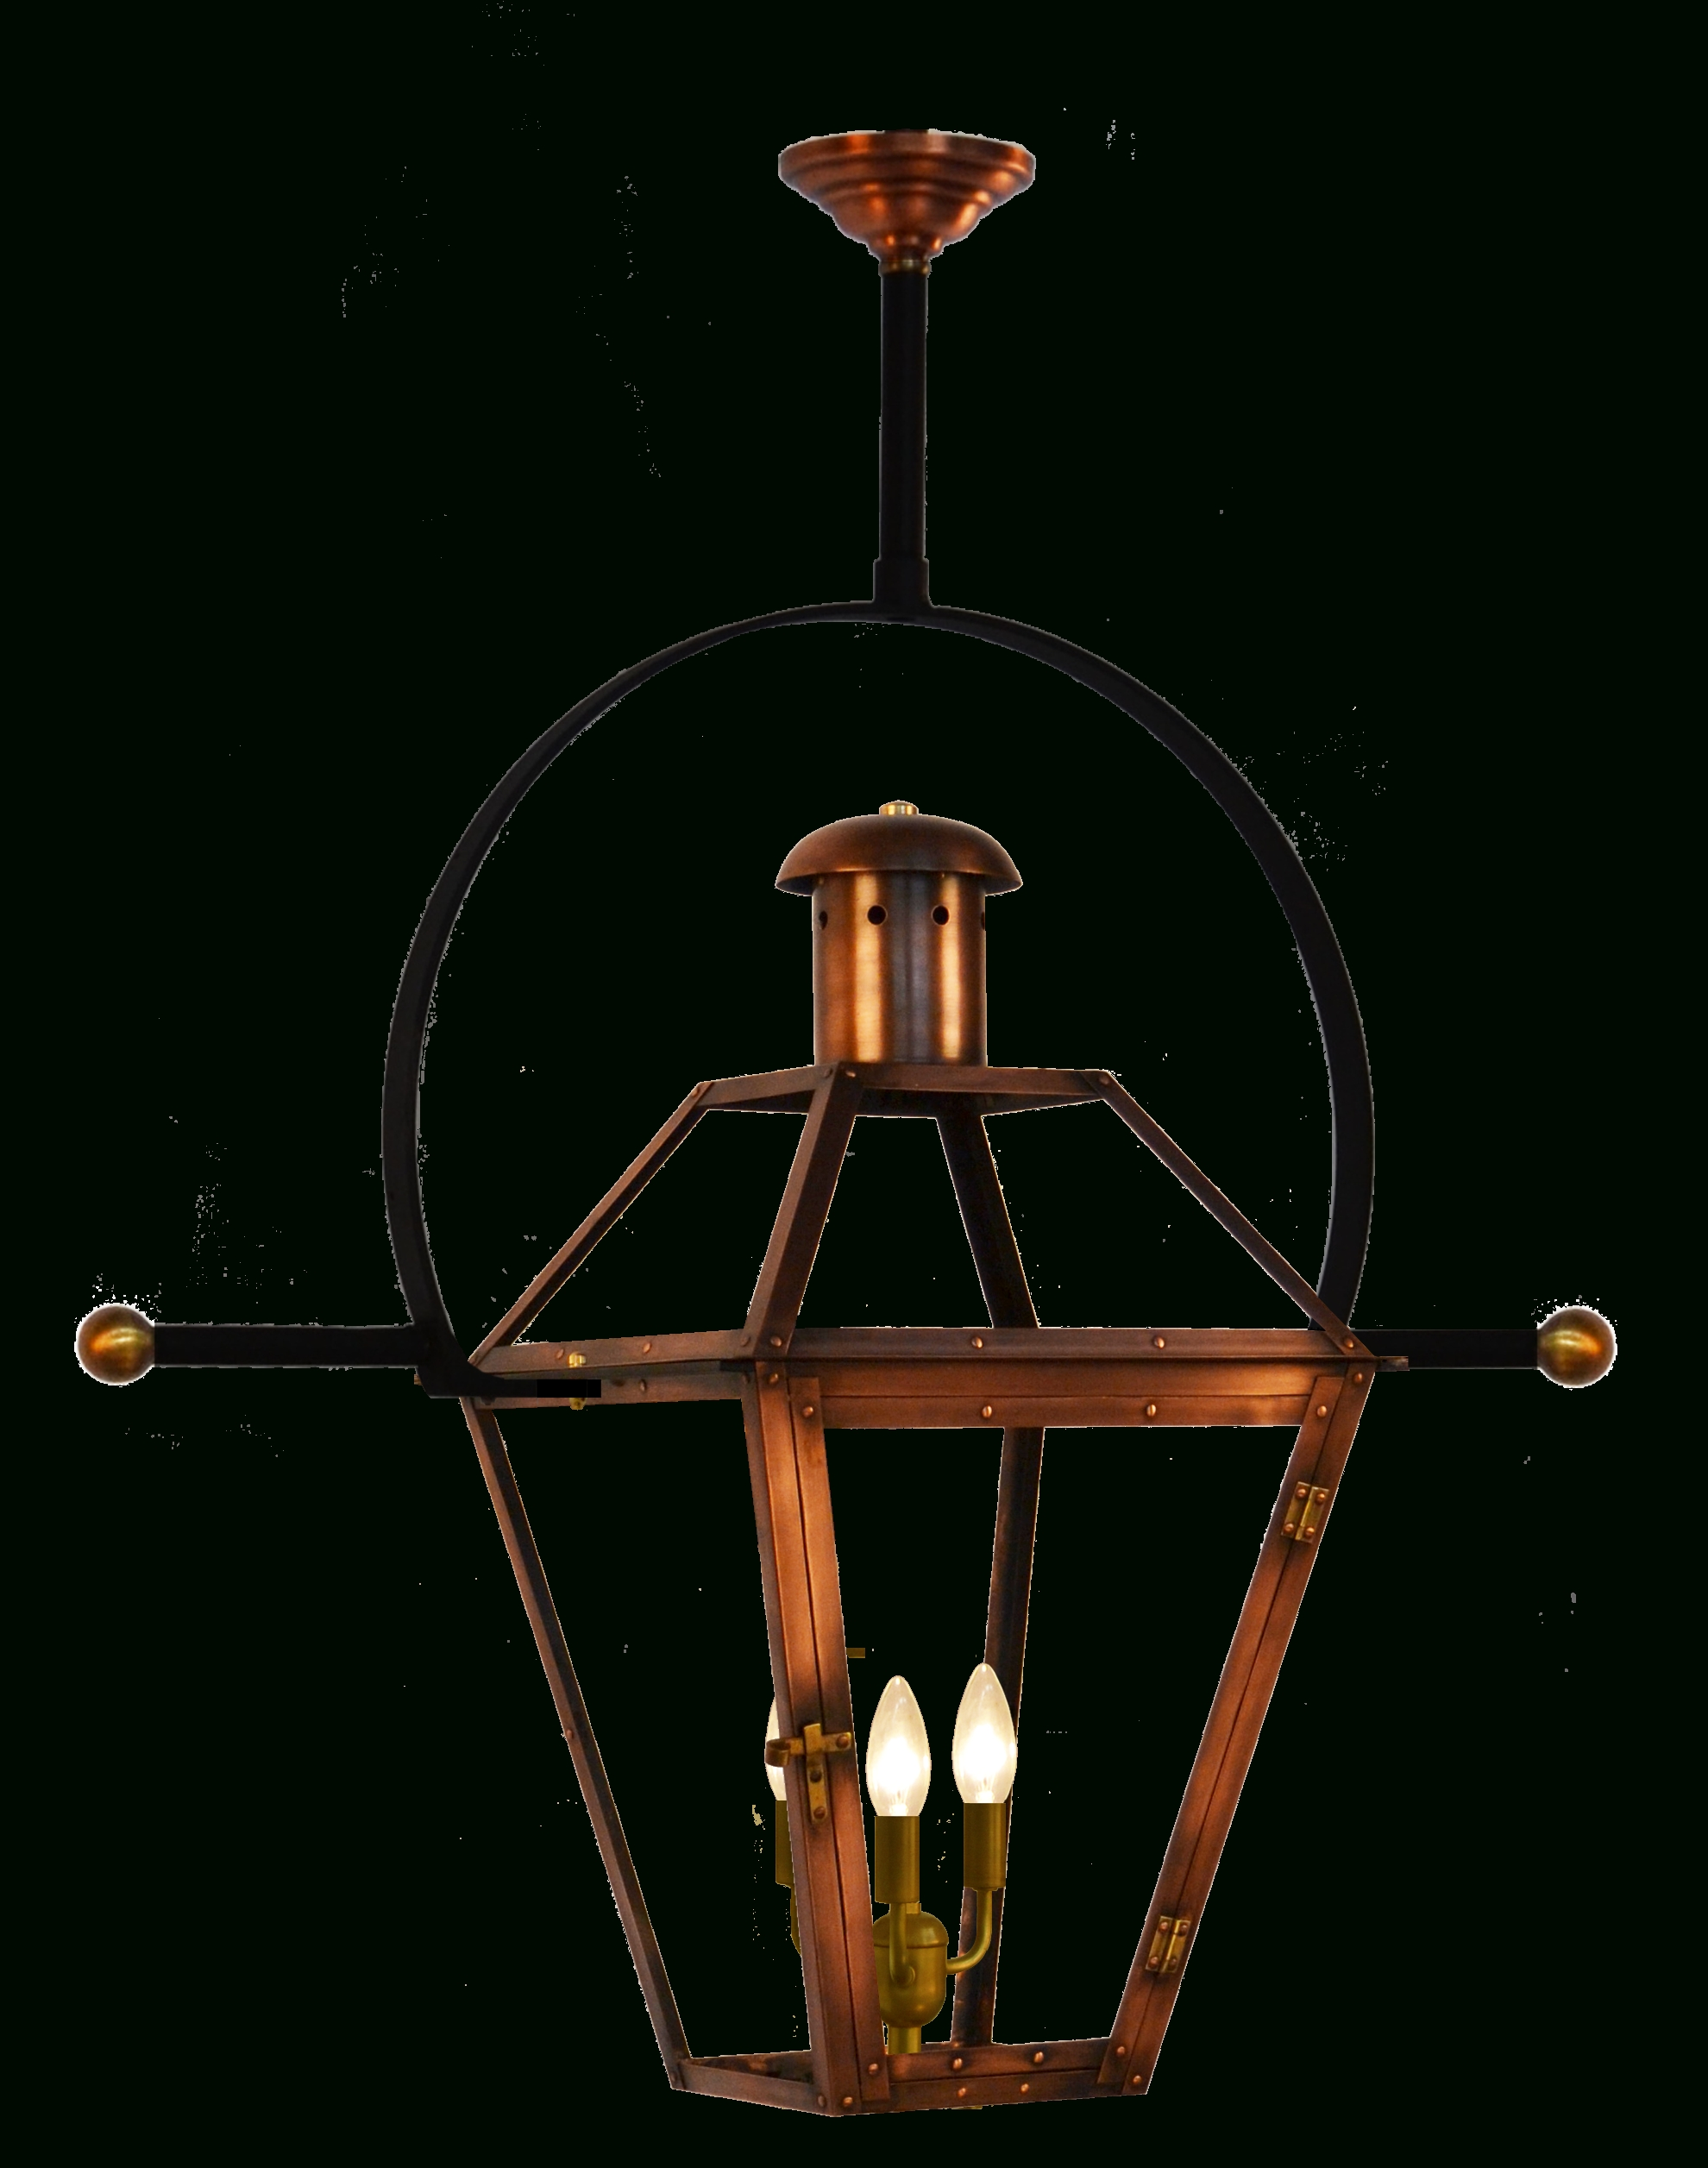 Copper Outdoor Electric Lanterns Intended For Most Current Georgetown Gas Or Electric Copper Lantern – French Market Lanterns (Gallery 4 of 20)